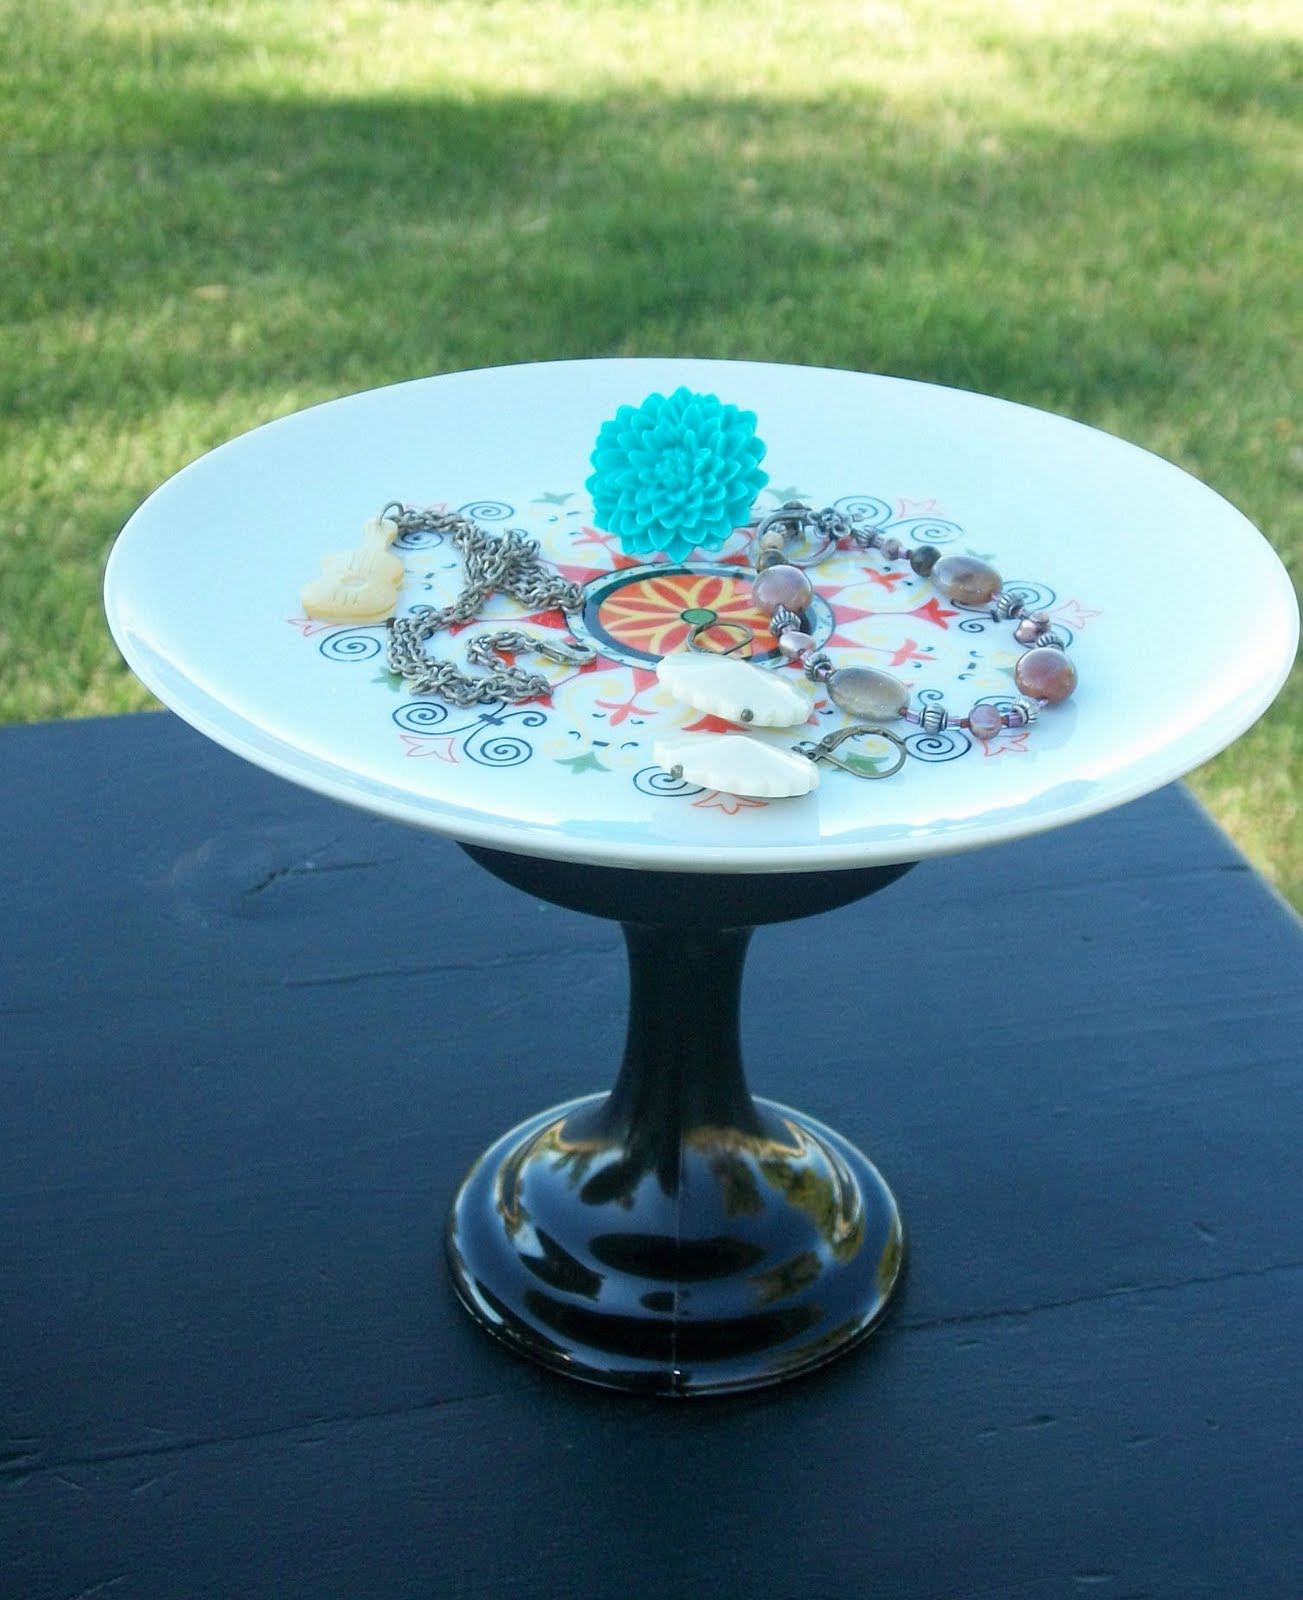 dandelion pickers unique cake stands 4 sale